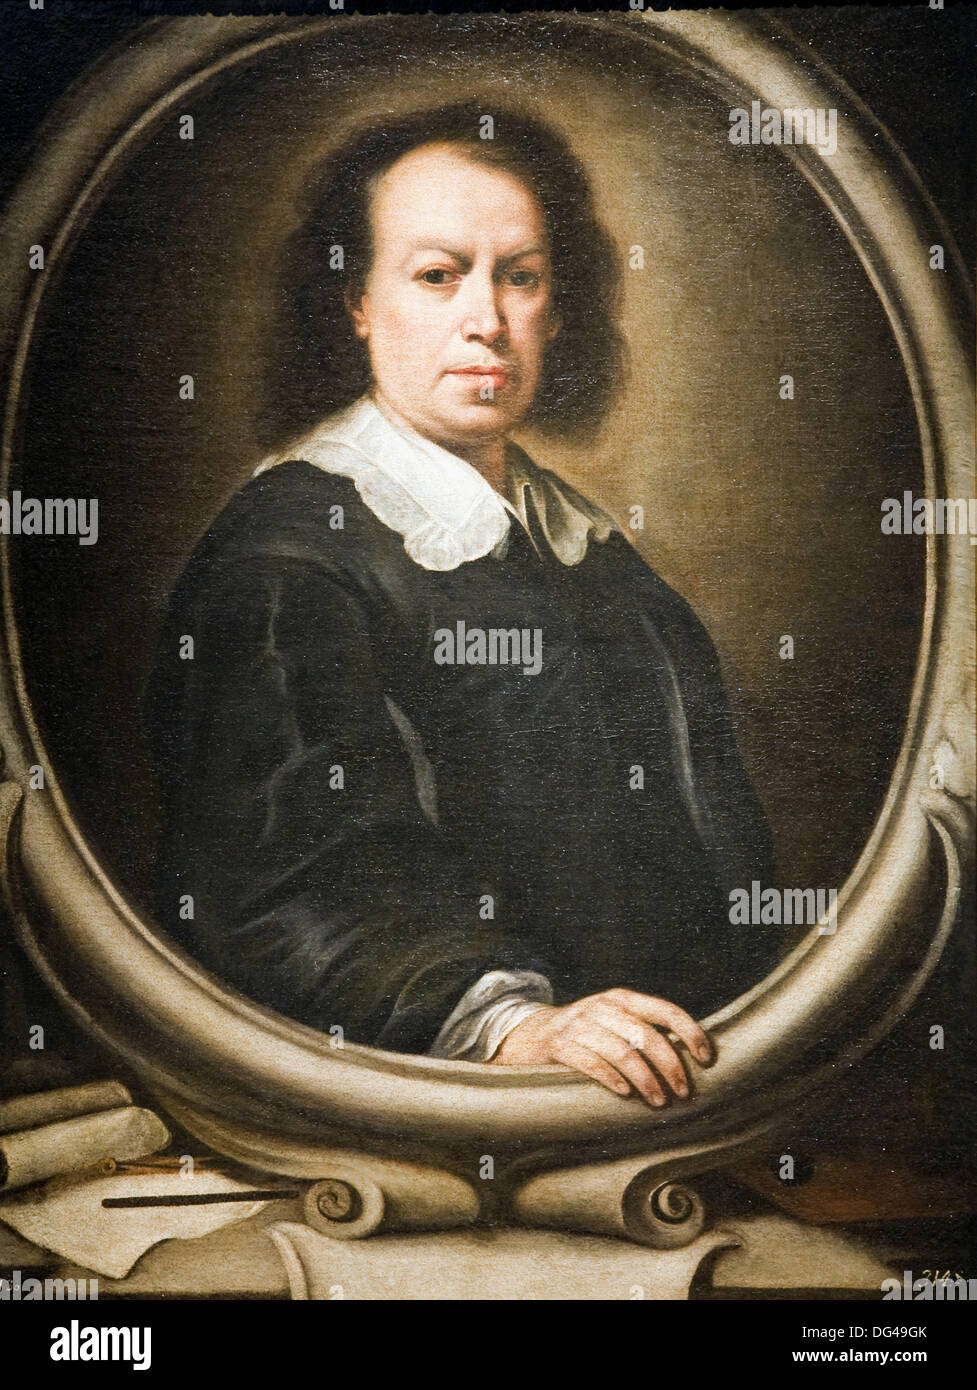 Copy of Murillo´s selfportrait by Alonso Miguel Tovar 18th century, Fine Arts Museum, Seville, Spain  The original Murillo´s - Stock Image